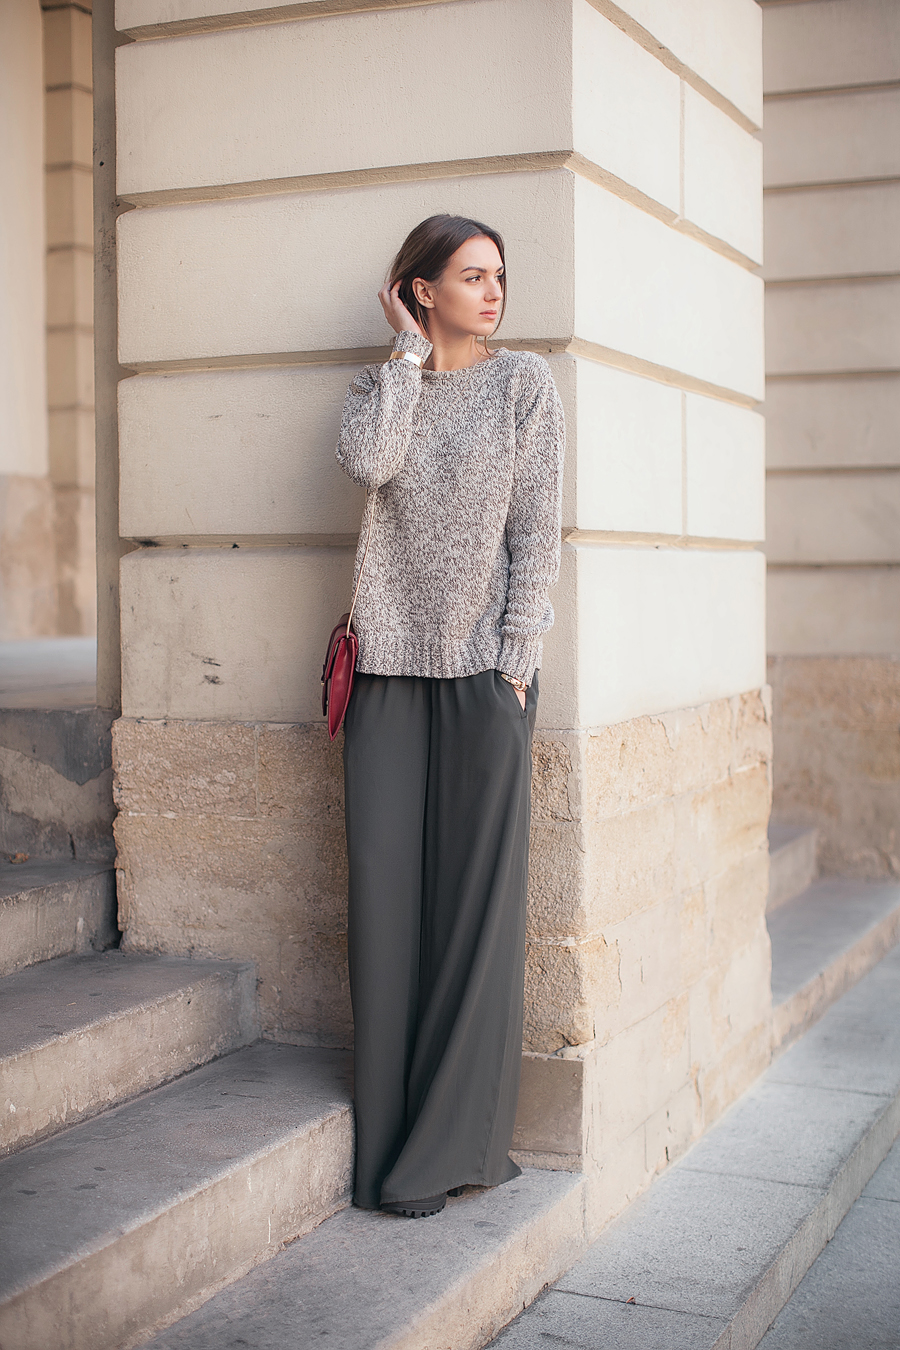 zara-dark-army-green-wide-leg-pants-fashion-blogger-outfit